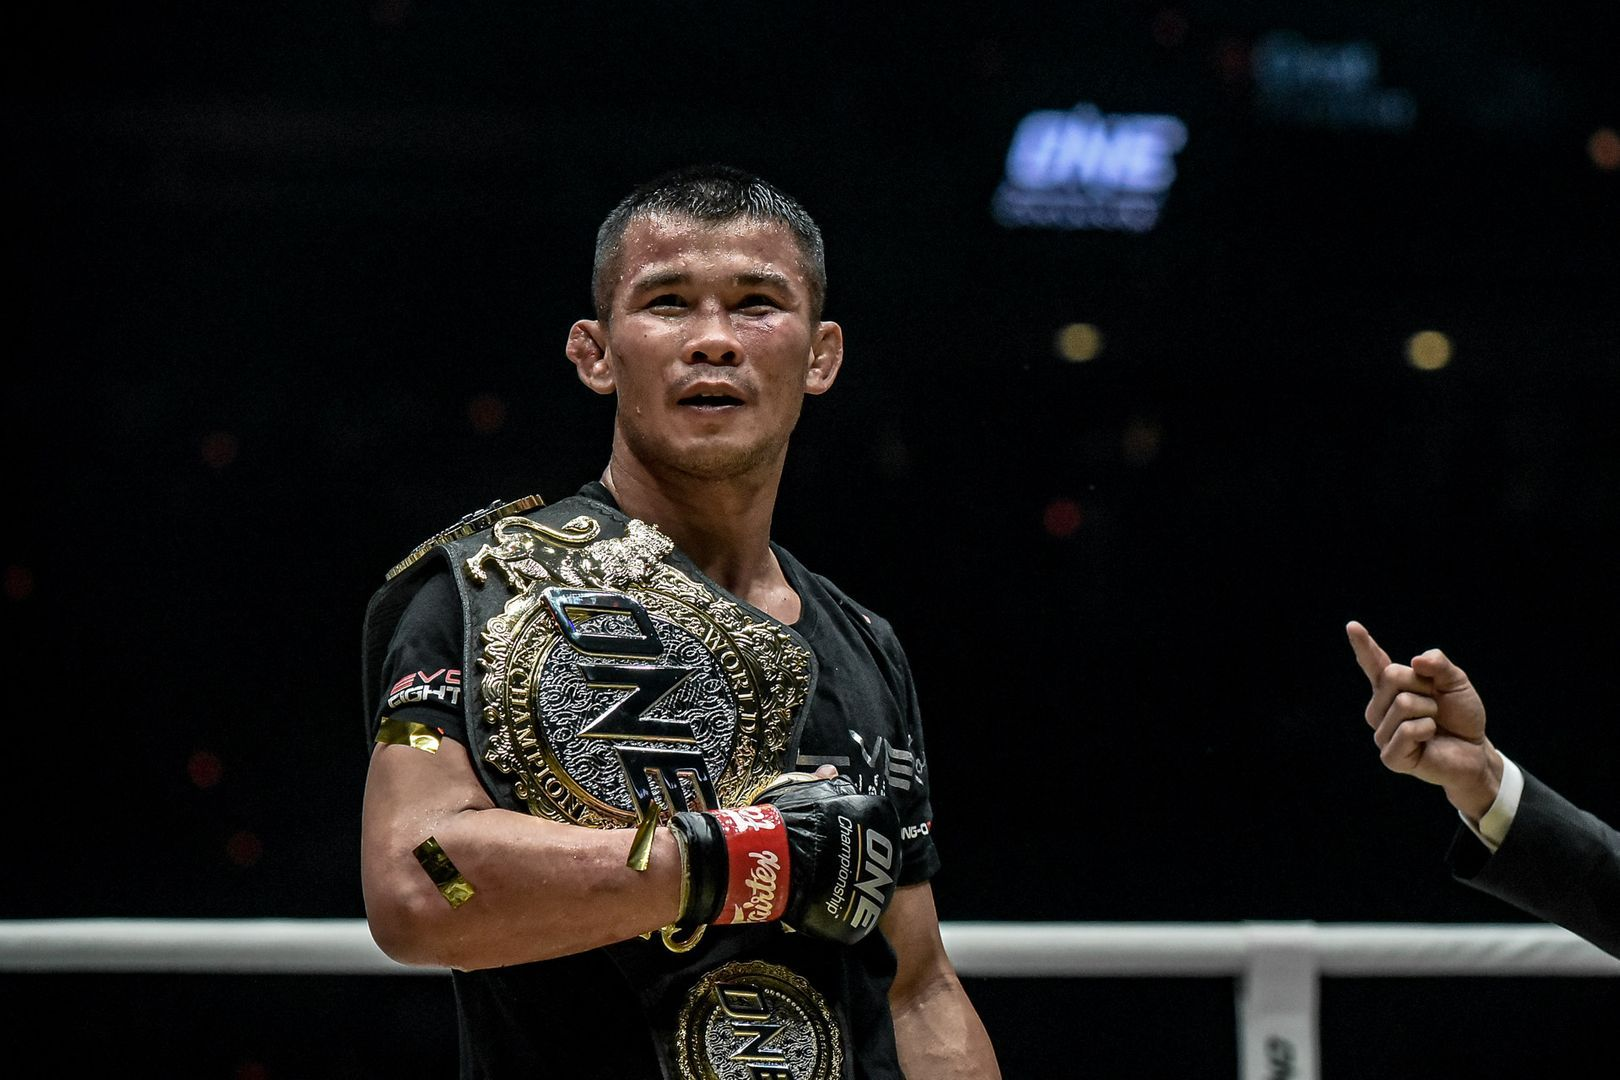 ONE Bantanweight Muay Thai World Champion Nong-O Gaiyanghadao at ONE EDGE OF GREATNESS